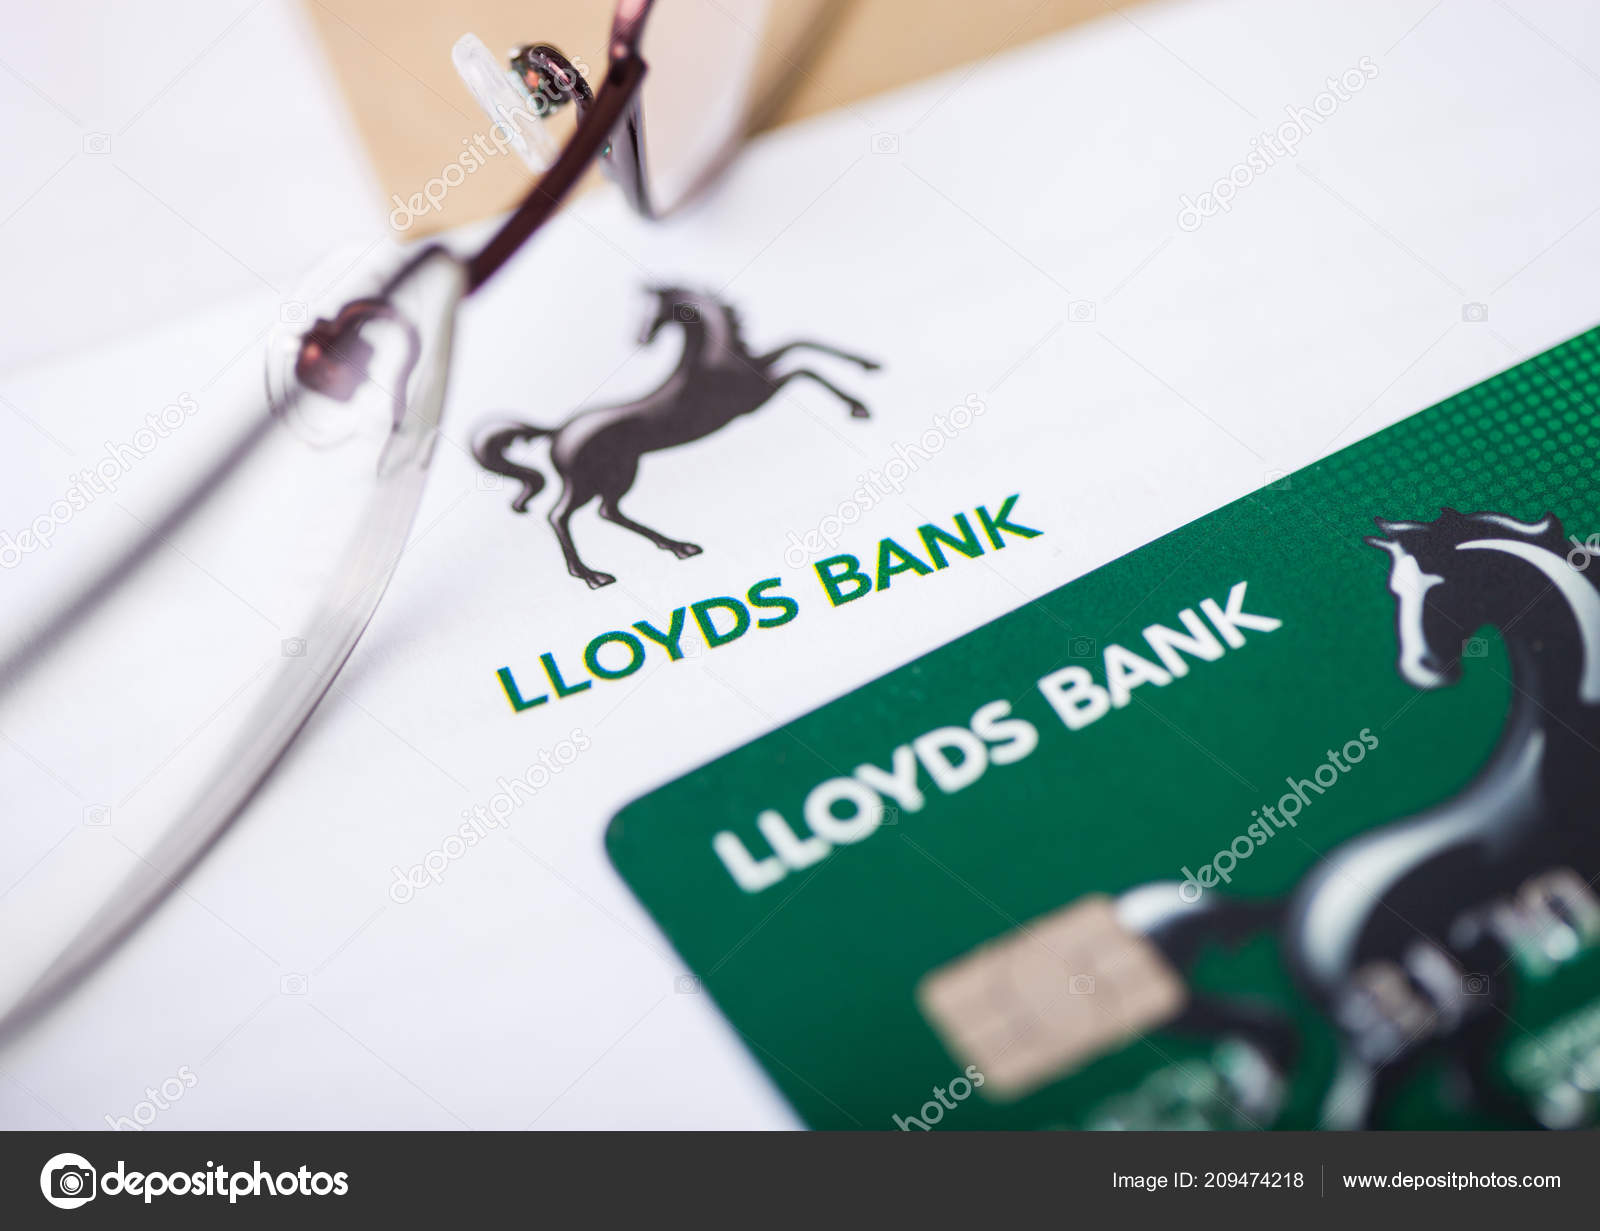 London august 2018 lloyds banking group statement credit card london august 2018 lloyds banking group statement credit card glasses stock photo reheart Choice Image